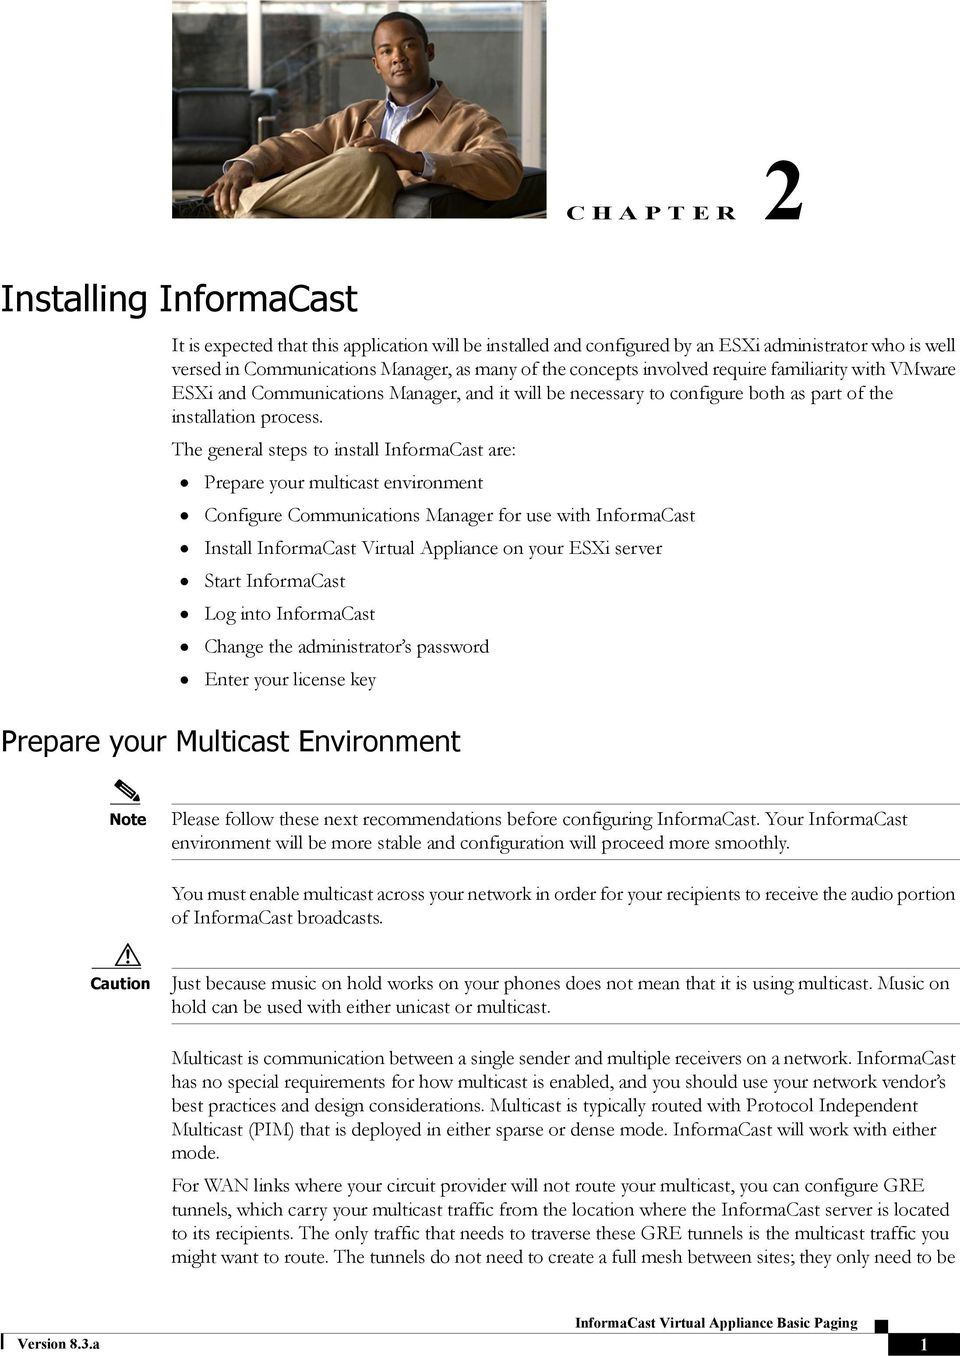 The general steps to install InformaCast are: Prepare your multicast environment Configure Communications Manager for use with InformaCast Install InformaCast Virtual Appliance on your ESXi server